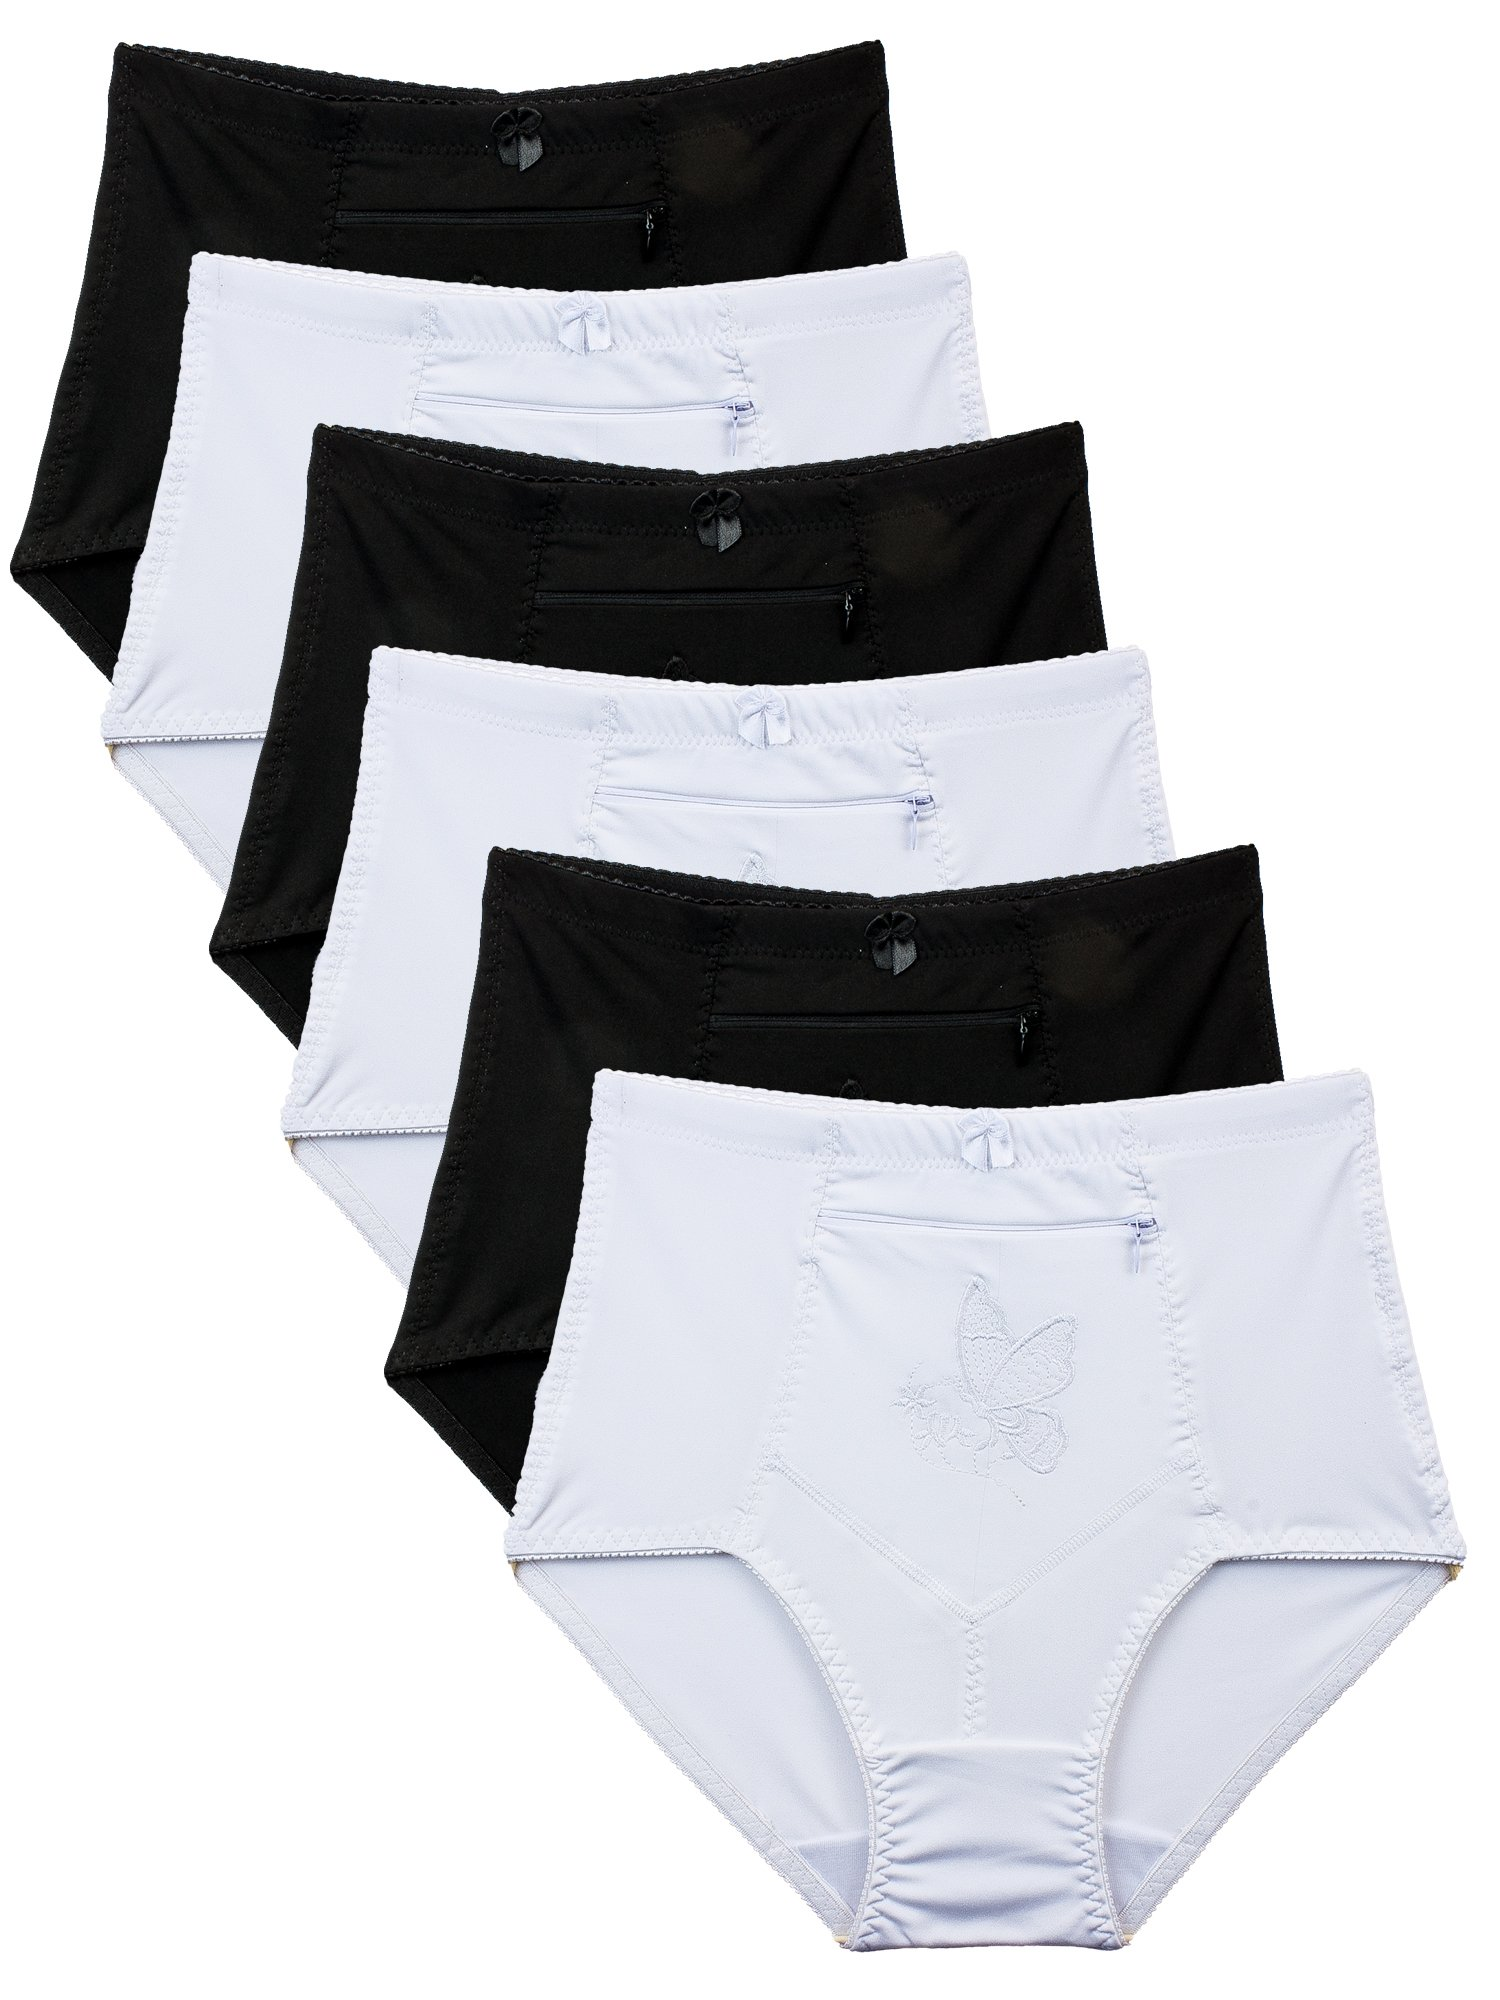 Barbra's 6 Pack Women's Travel Pocket Girdle Brief Panties S-4XL (2XL)